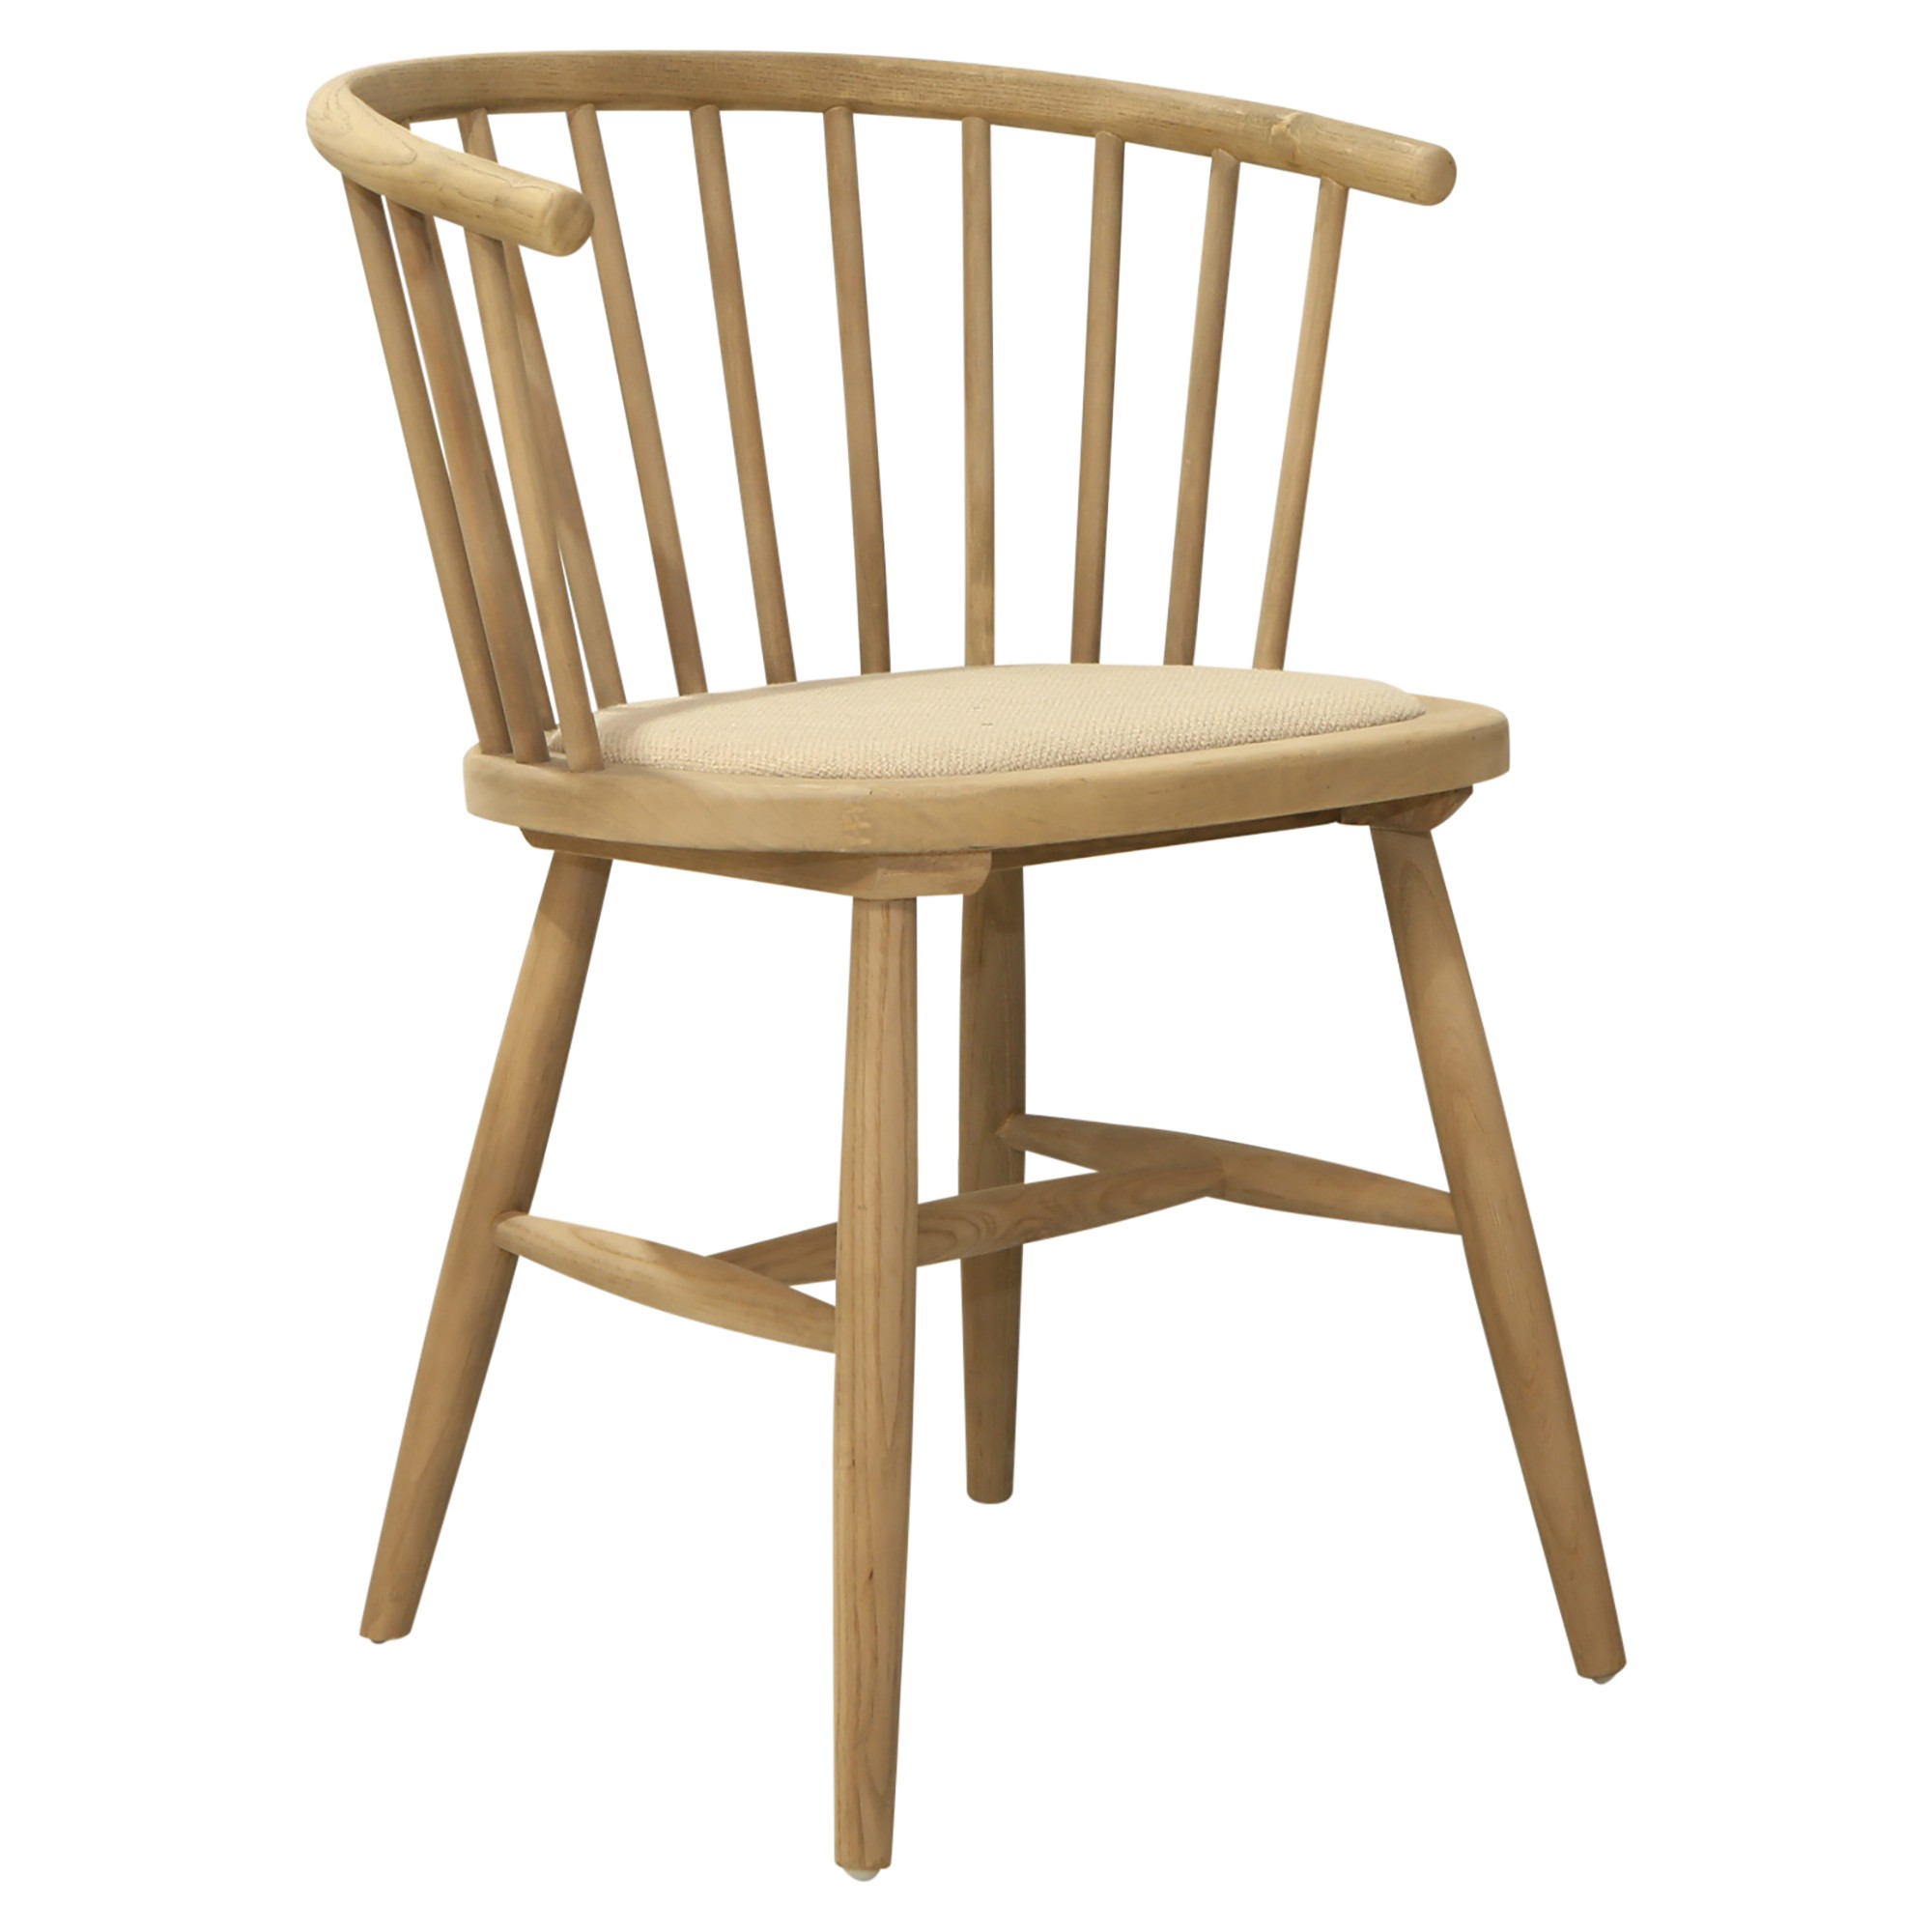 Dexter Elm Timber Dining Chair